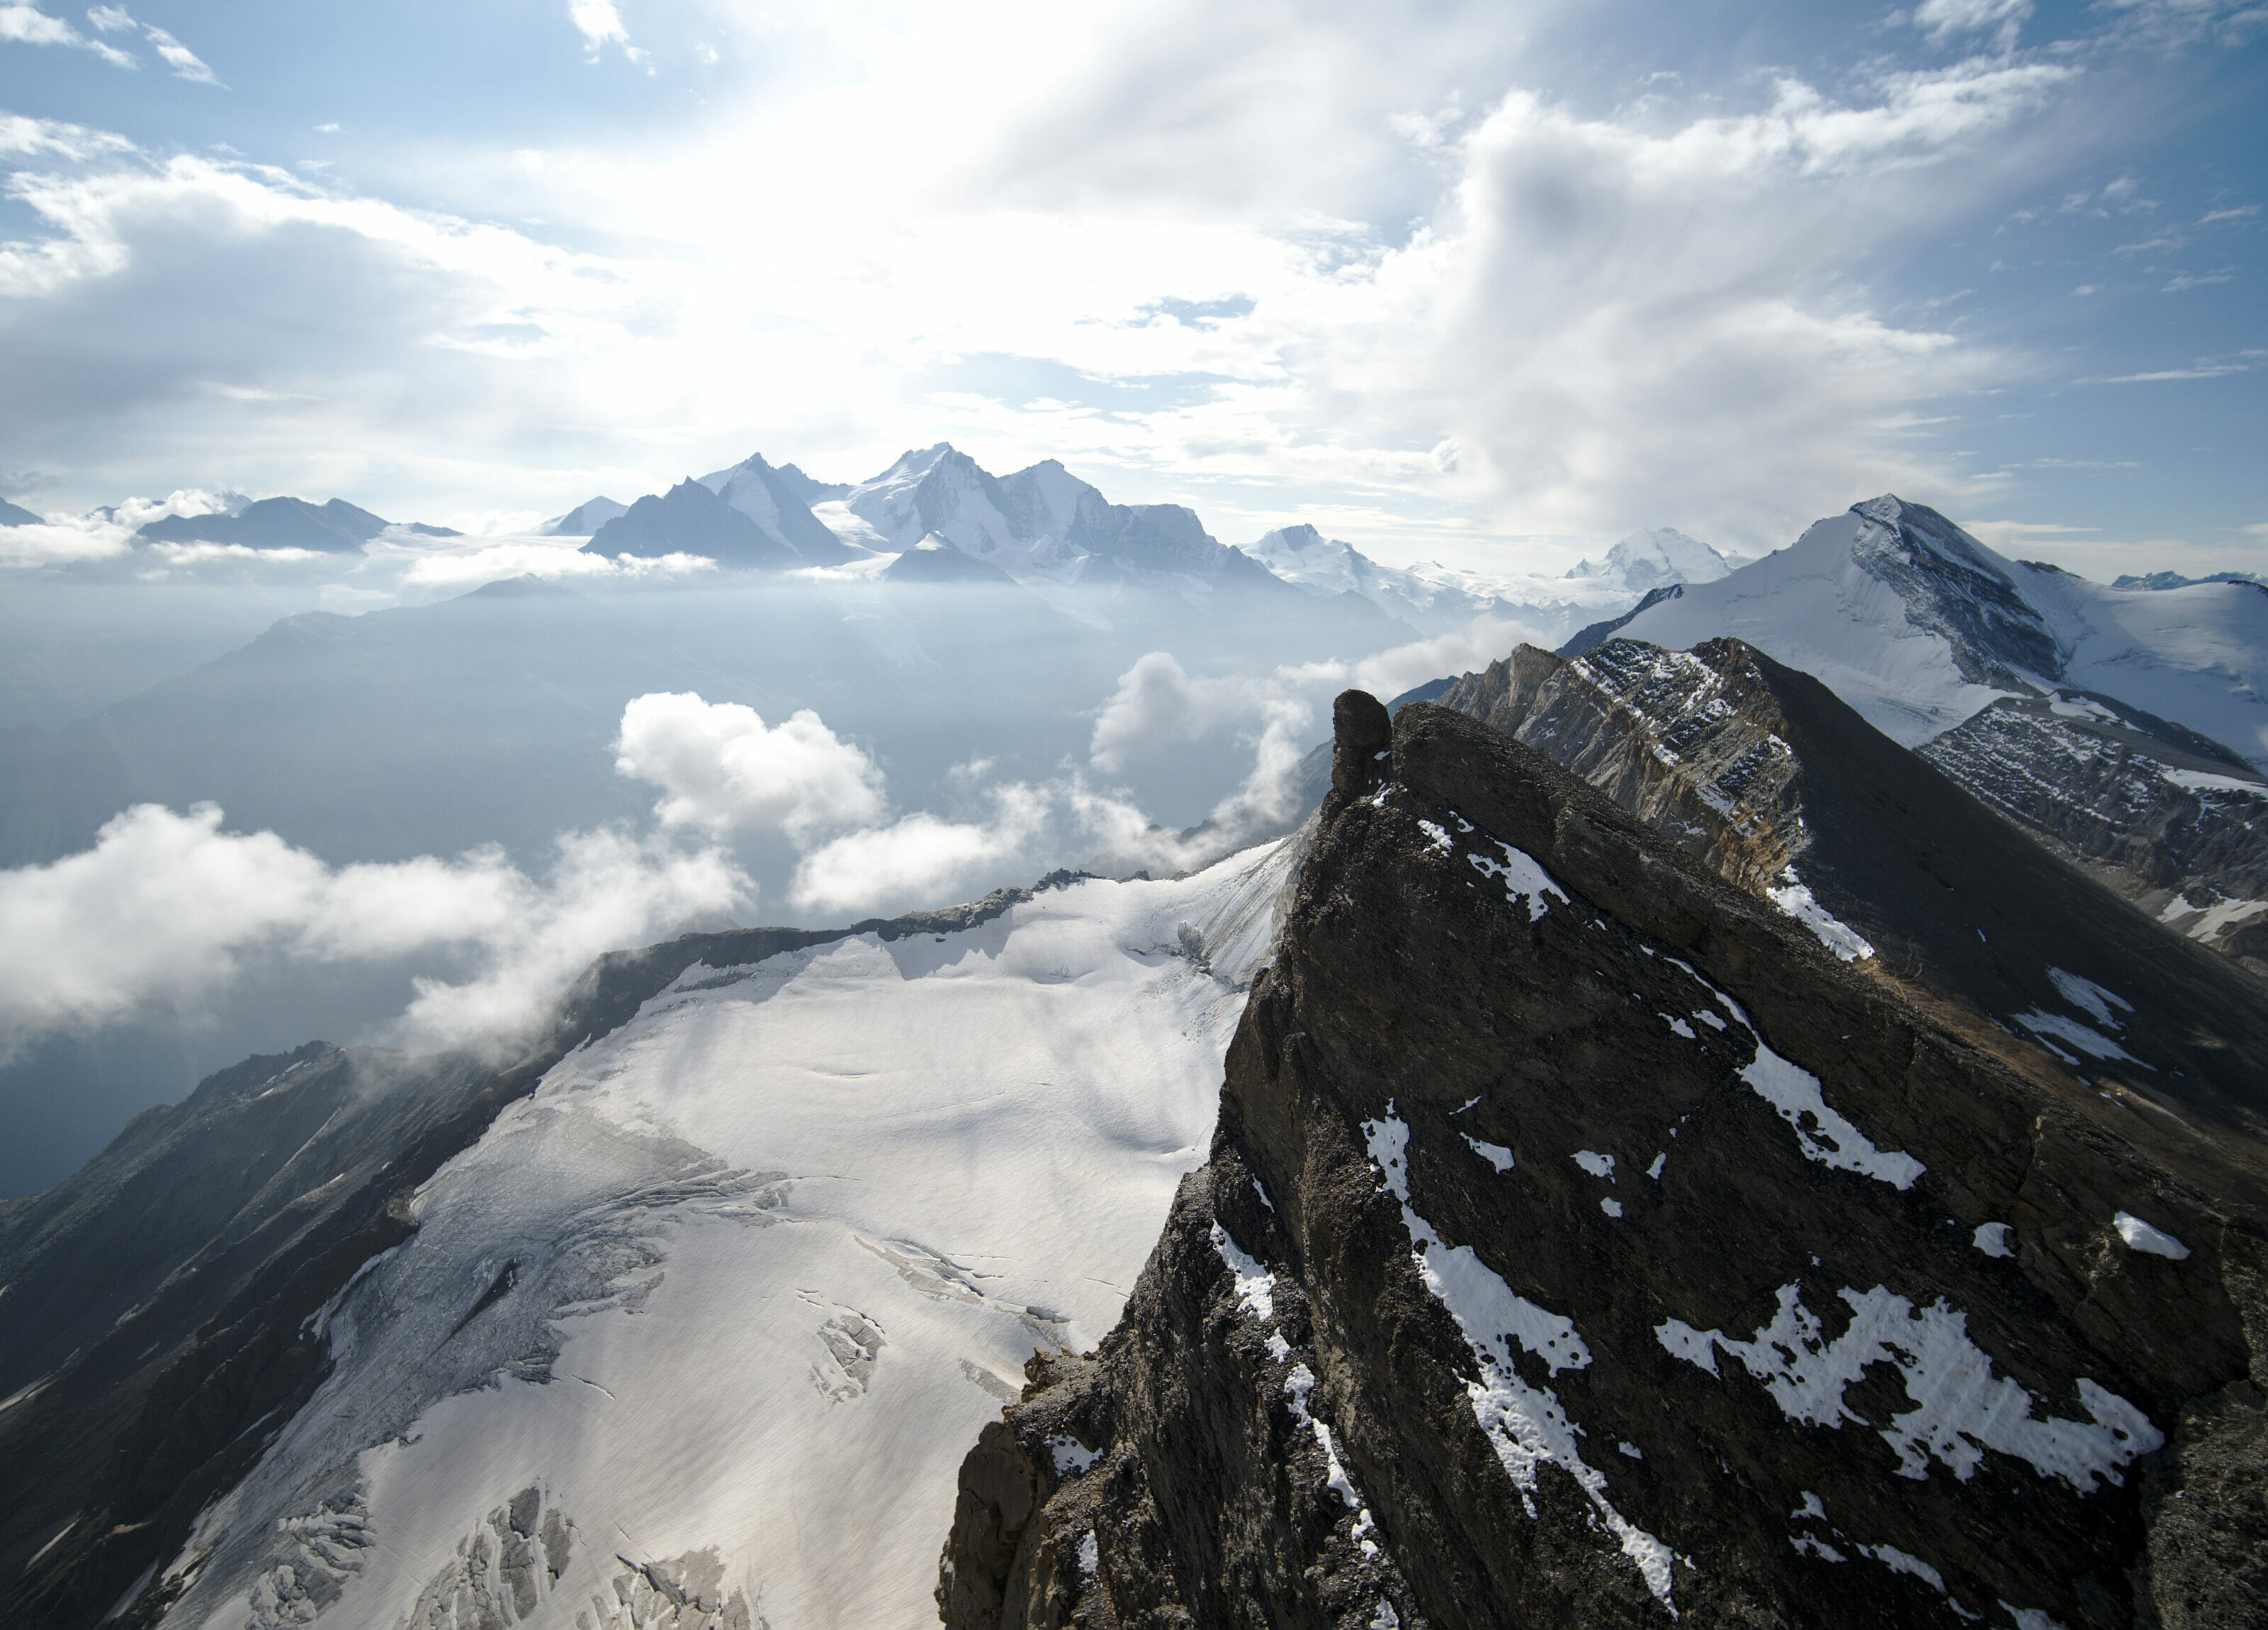 view at the top of Barrhorn